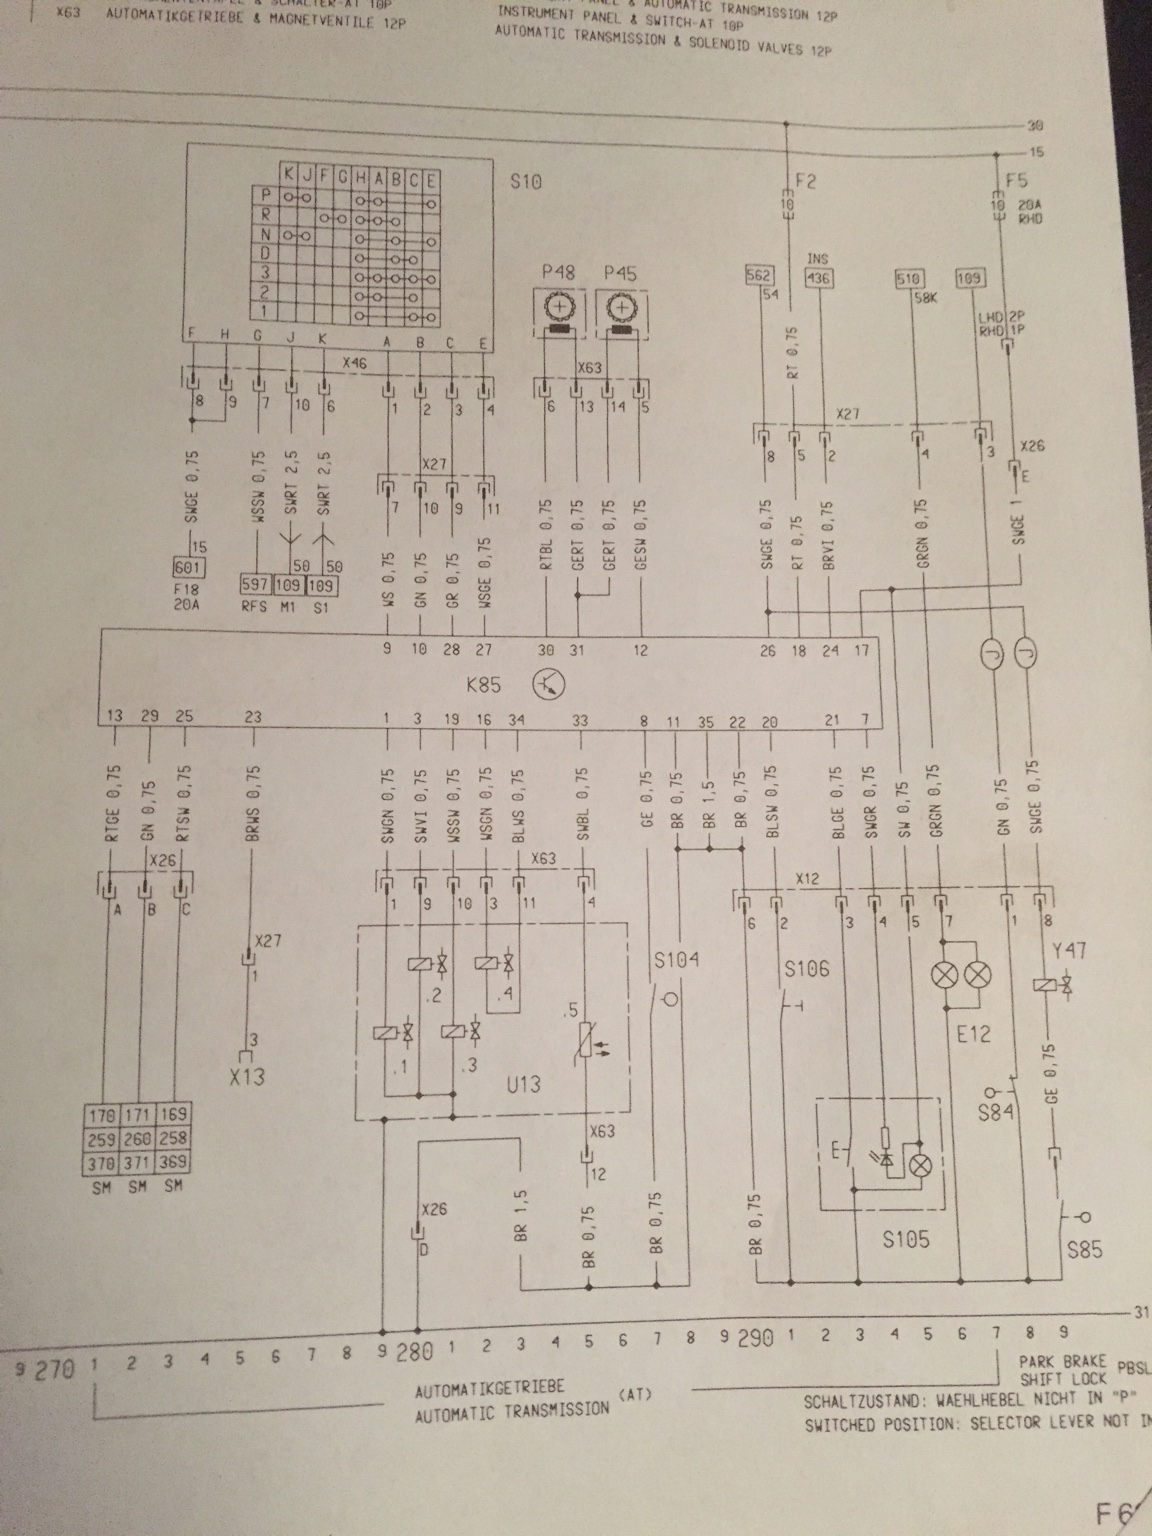 Wiring Diagram - Corsa B Automatic - Corsa-b Uk